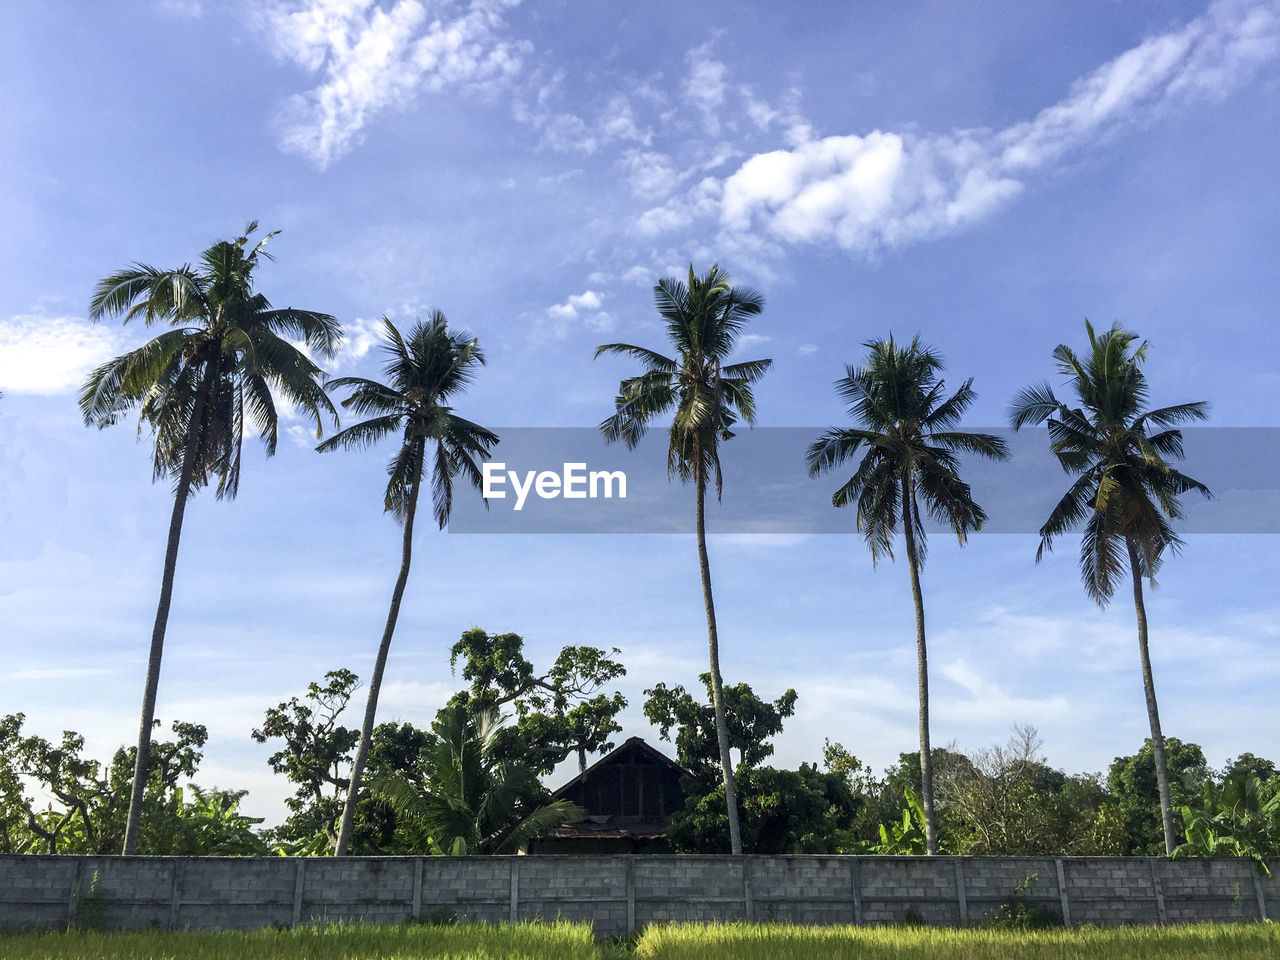 tree, sky, plant, palm tree, tropical climate, cloud - sky, growth, nature, beauty in nature, no people, low angle view, day, coconut palm tree, tranquil scene, tranquility, scenics - nature, outdoors, tall - high, built structure, architecture, tropical tree